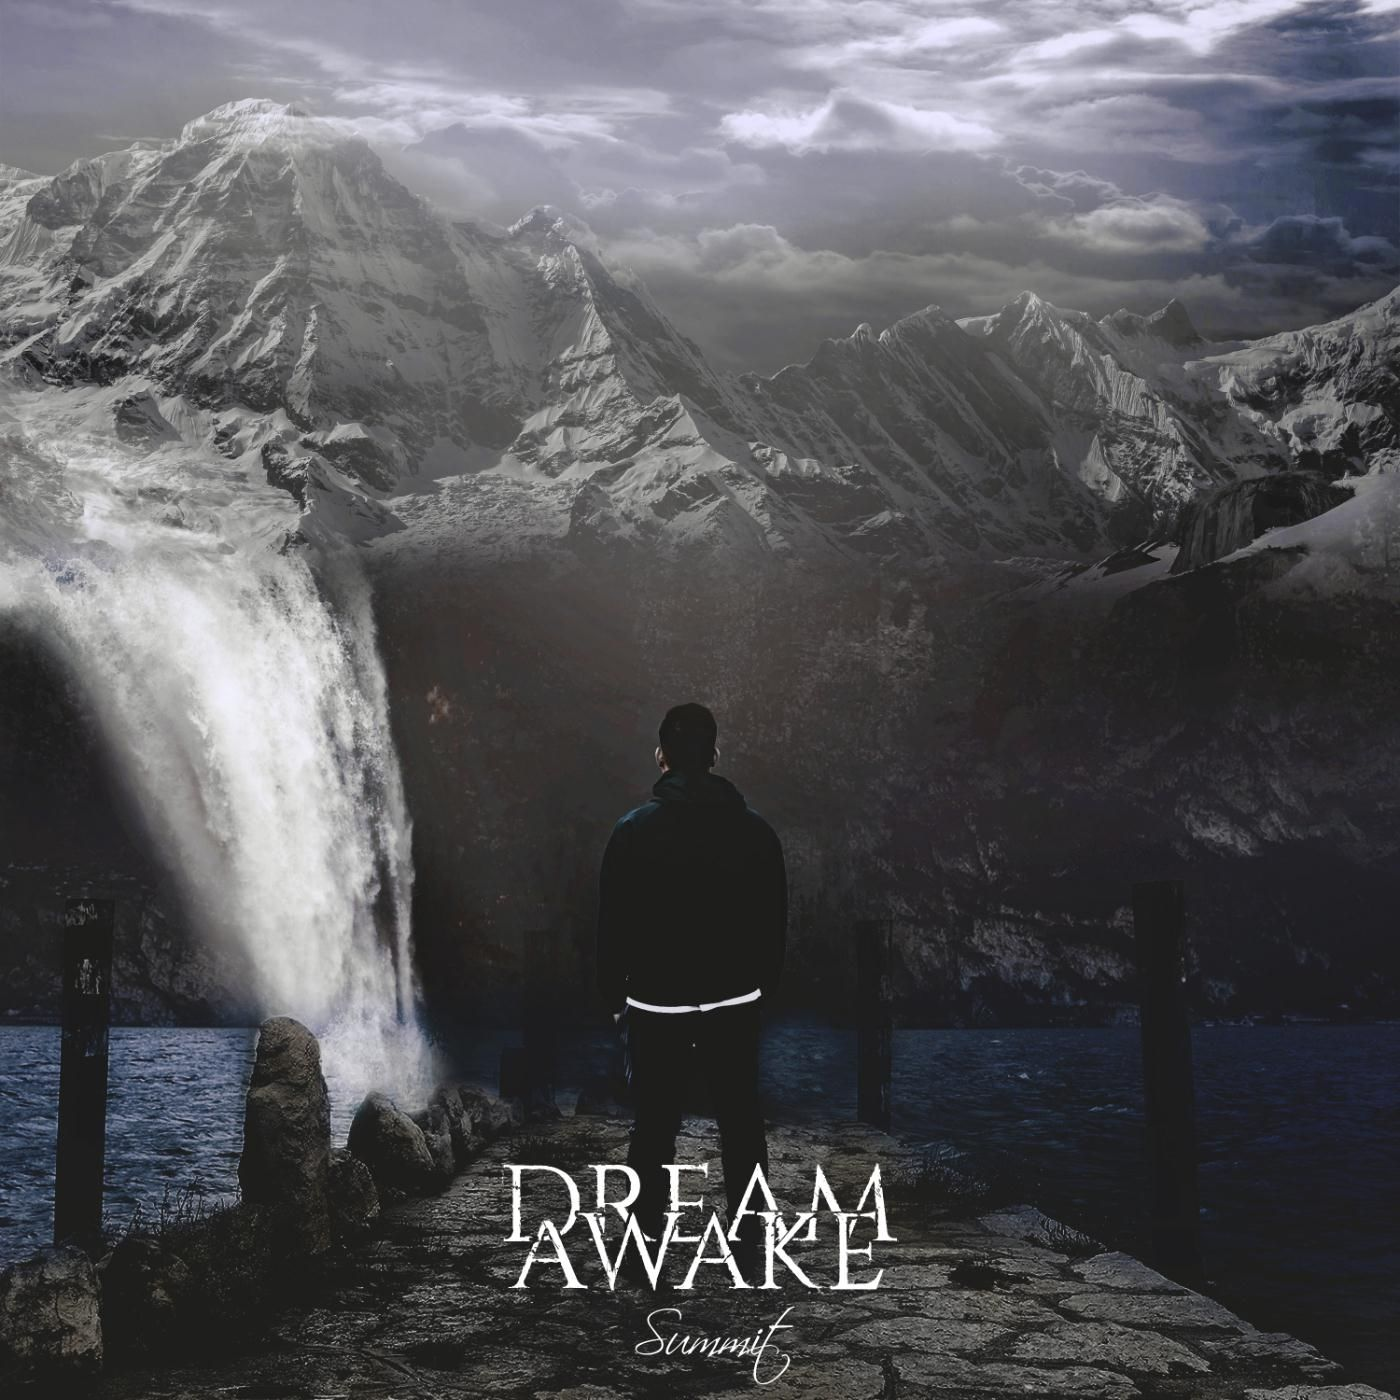 Dream Awake - Summit [single] (2016)